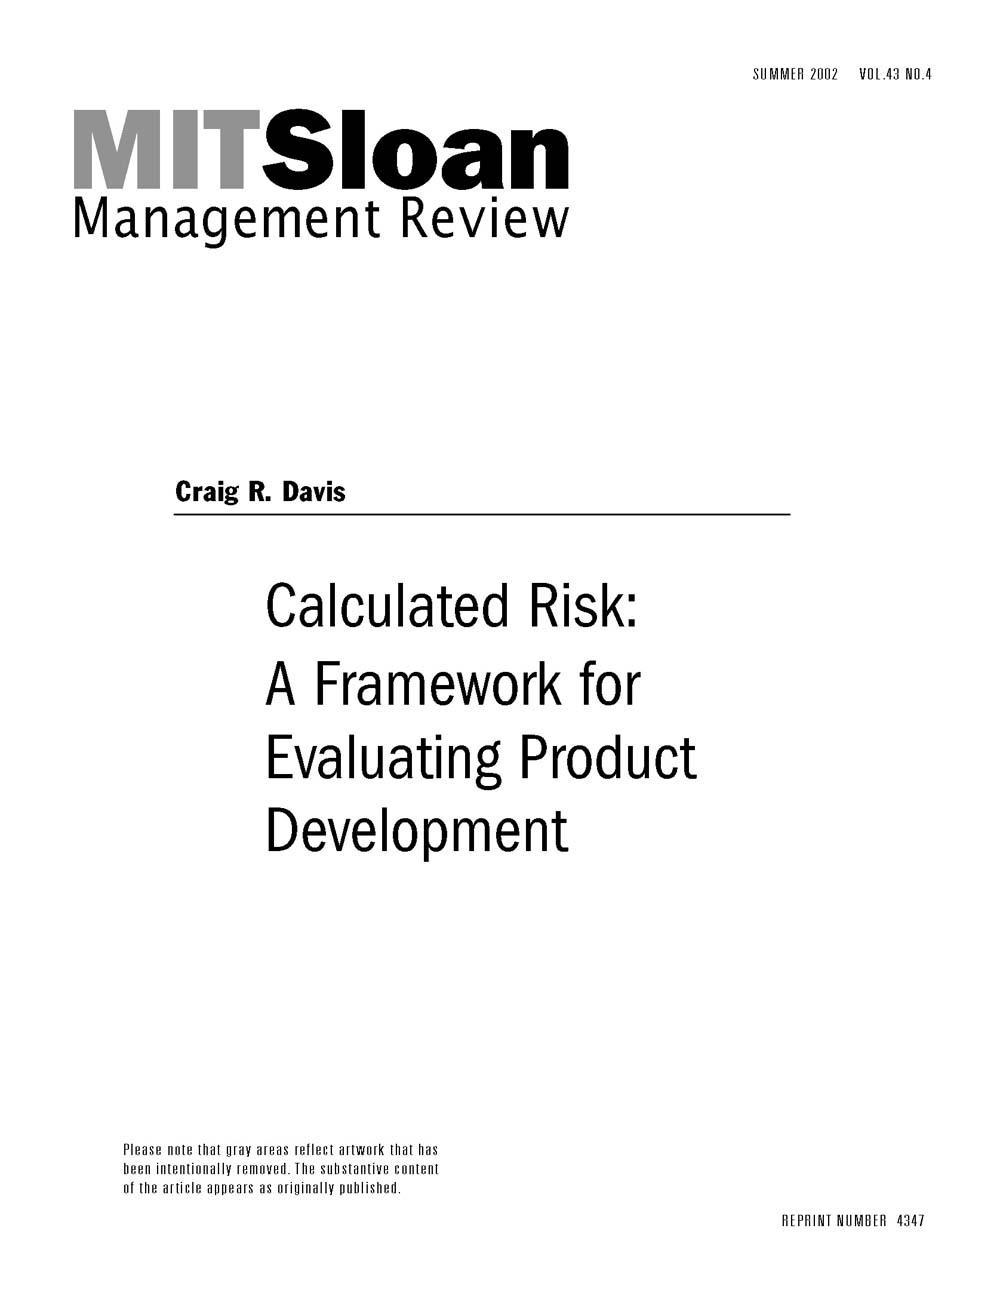 Calculated Risk: A Framework for Evaluating Product Development - MIT SMR  Store